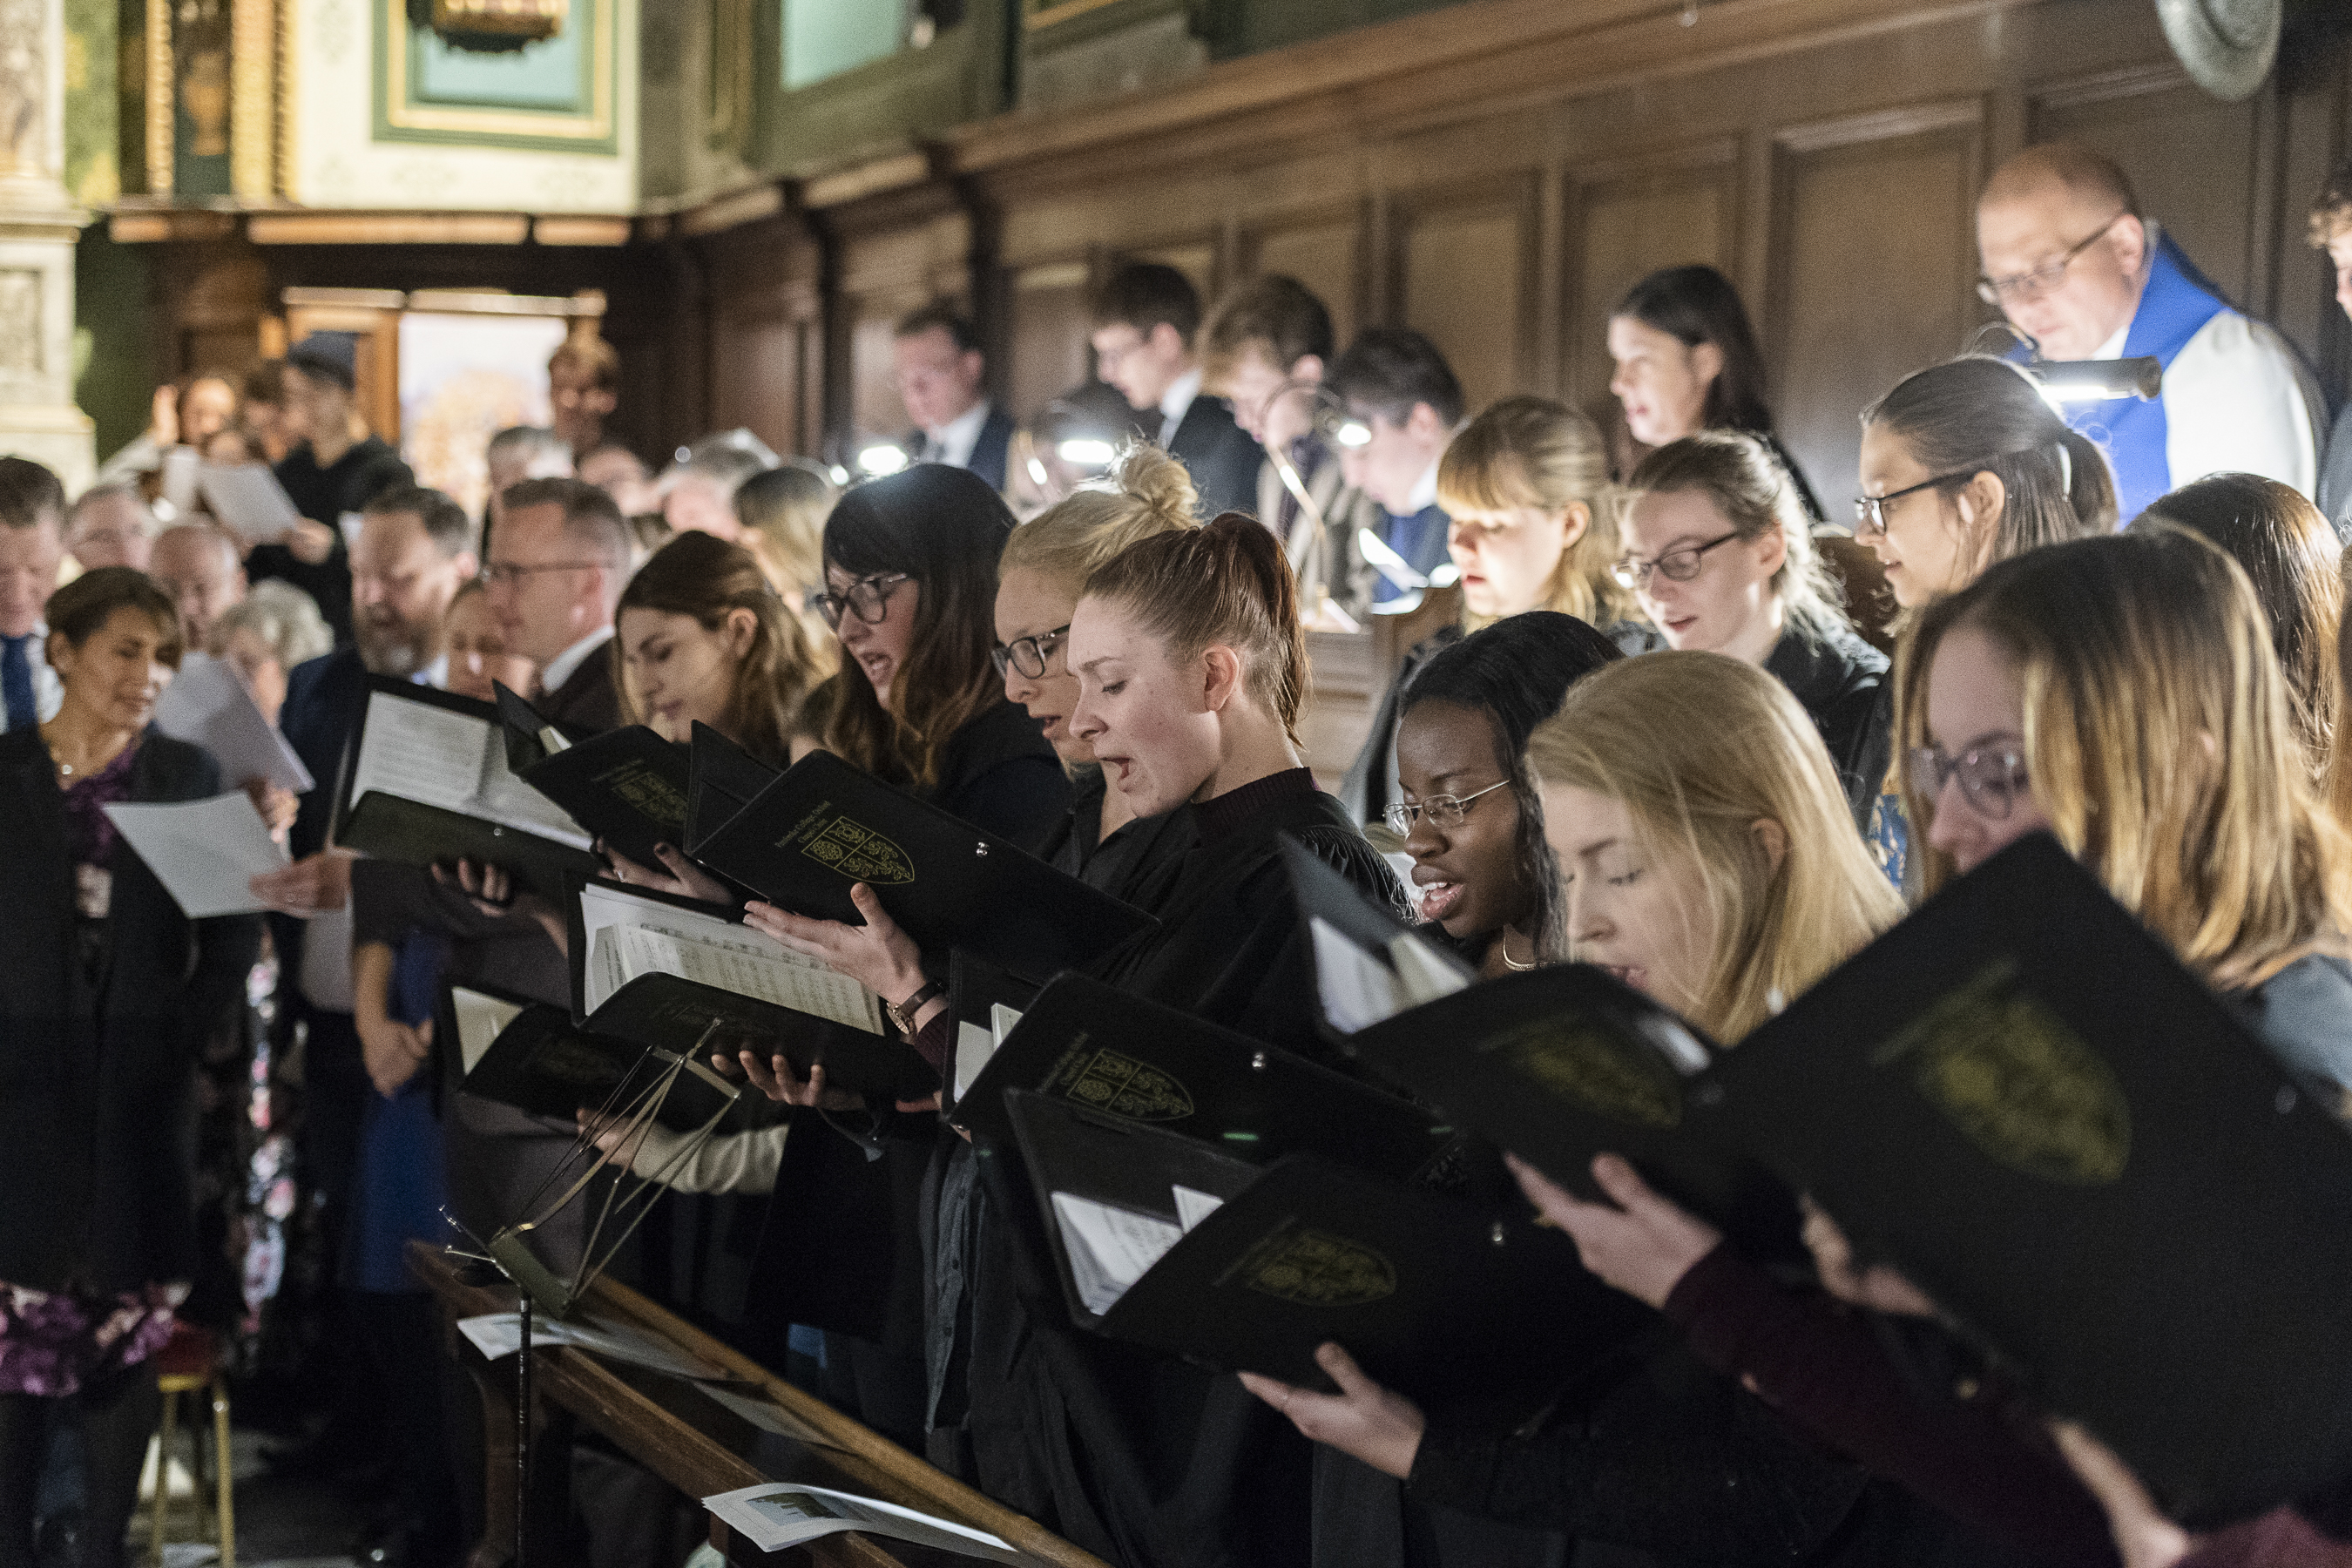 """The Pembroke College Chapel Choir and congregation sing a Christmas hymn during the traditional Church of England """"Nine Lessons and Carols"""" service at the Pembroke College Chapel in Oxford, England, on Sunday, Nov. 25, 2018."""